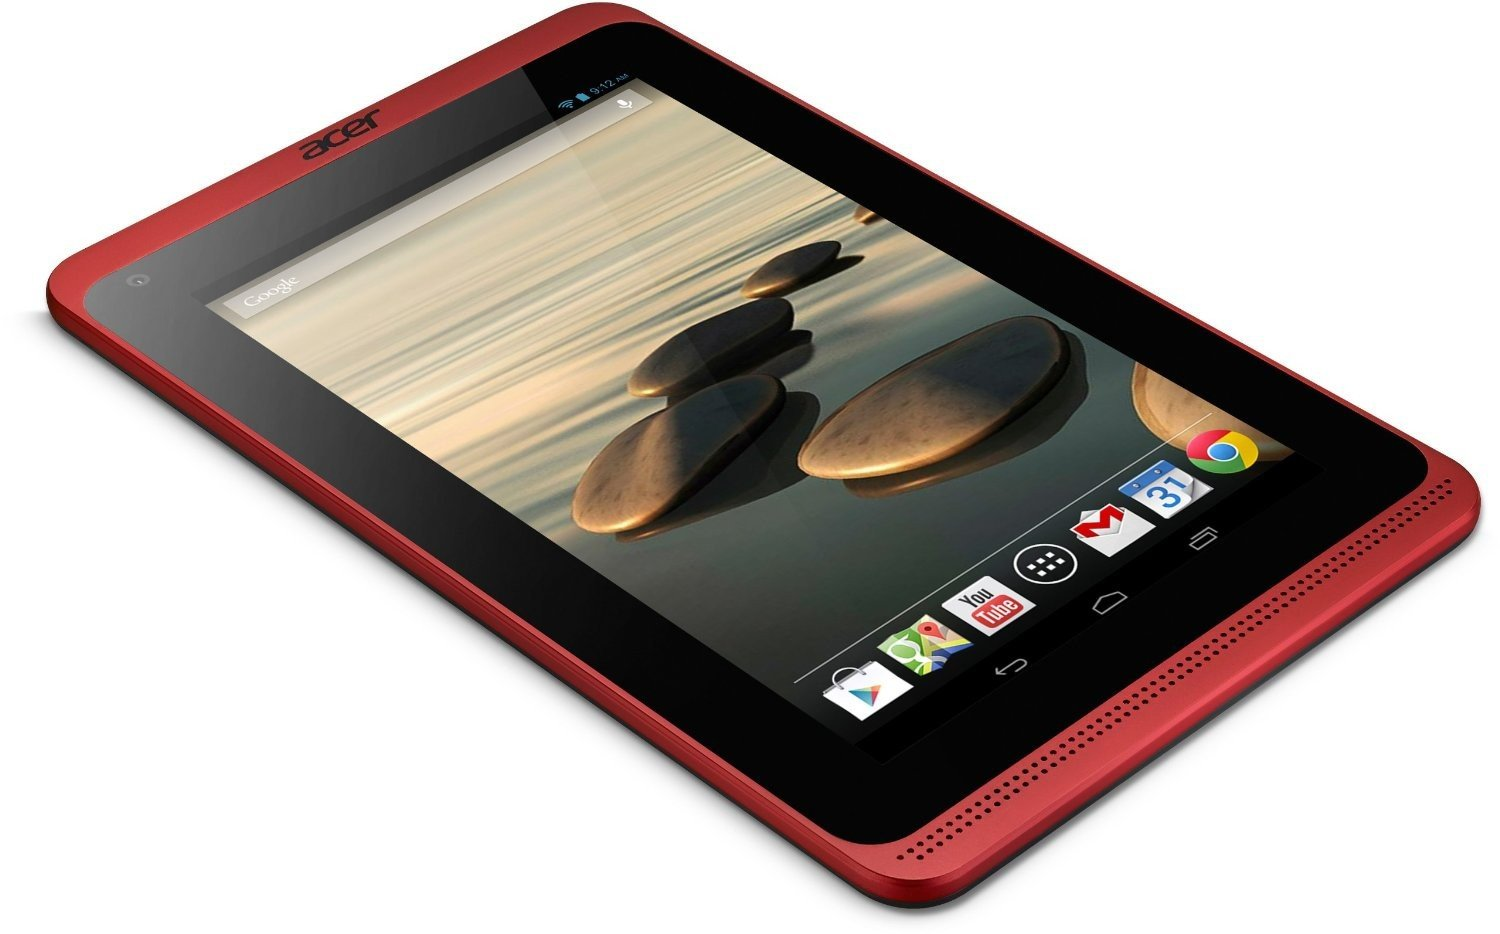 Acer Iconia B1 Test